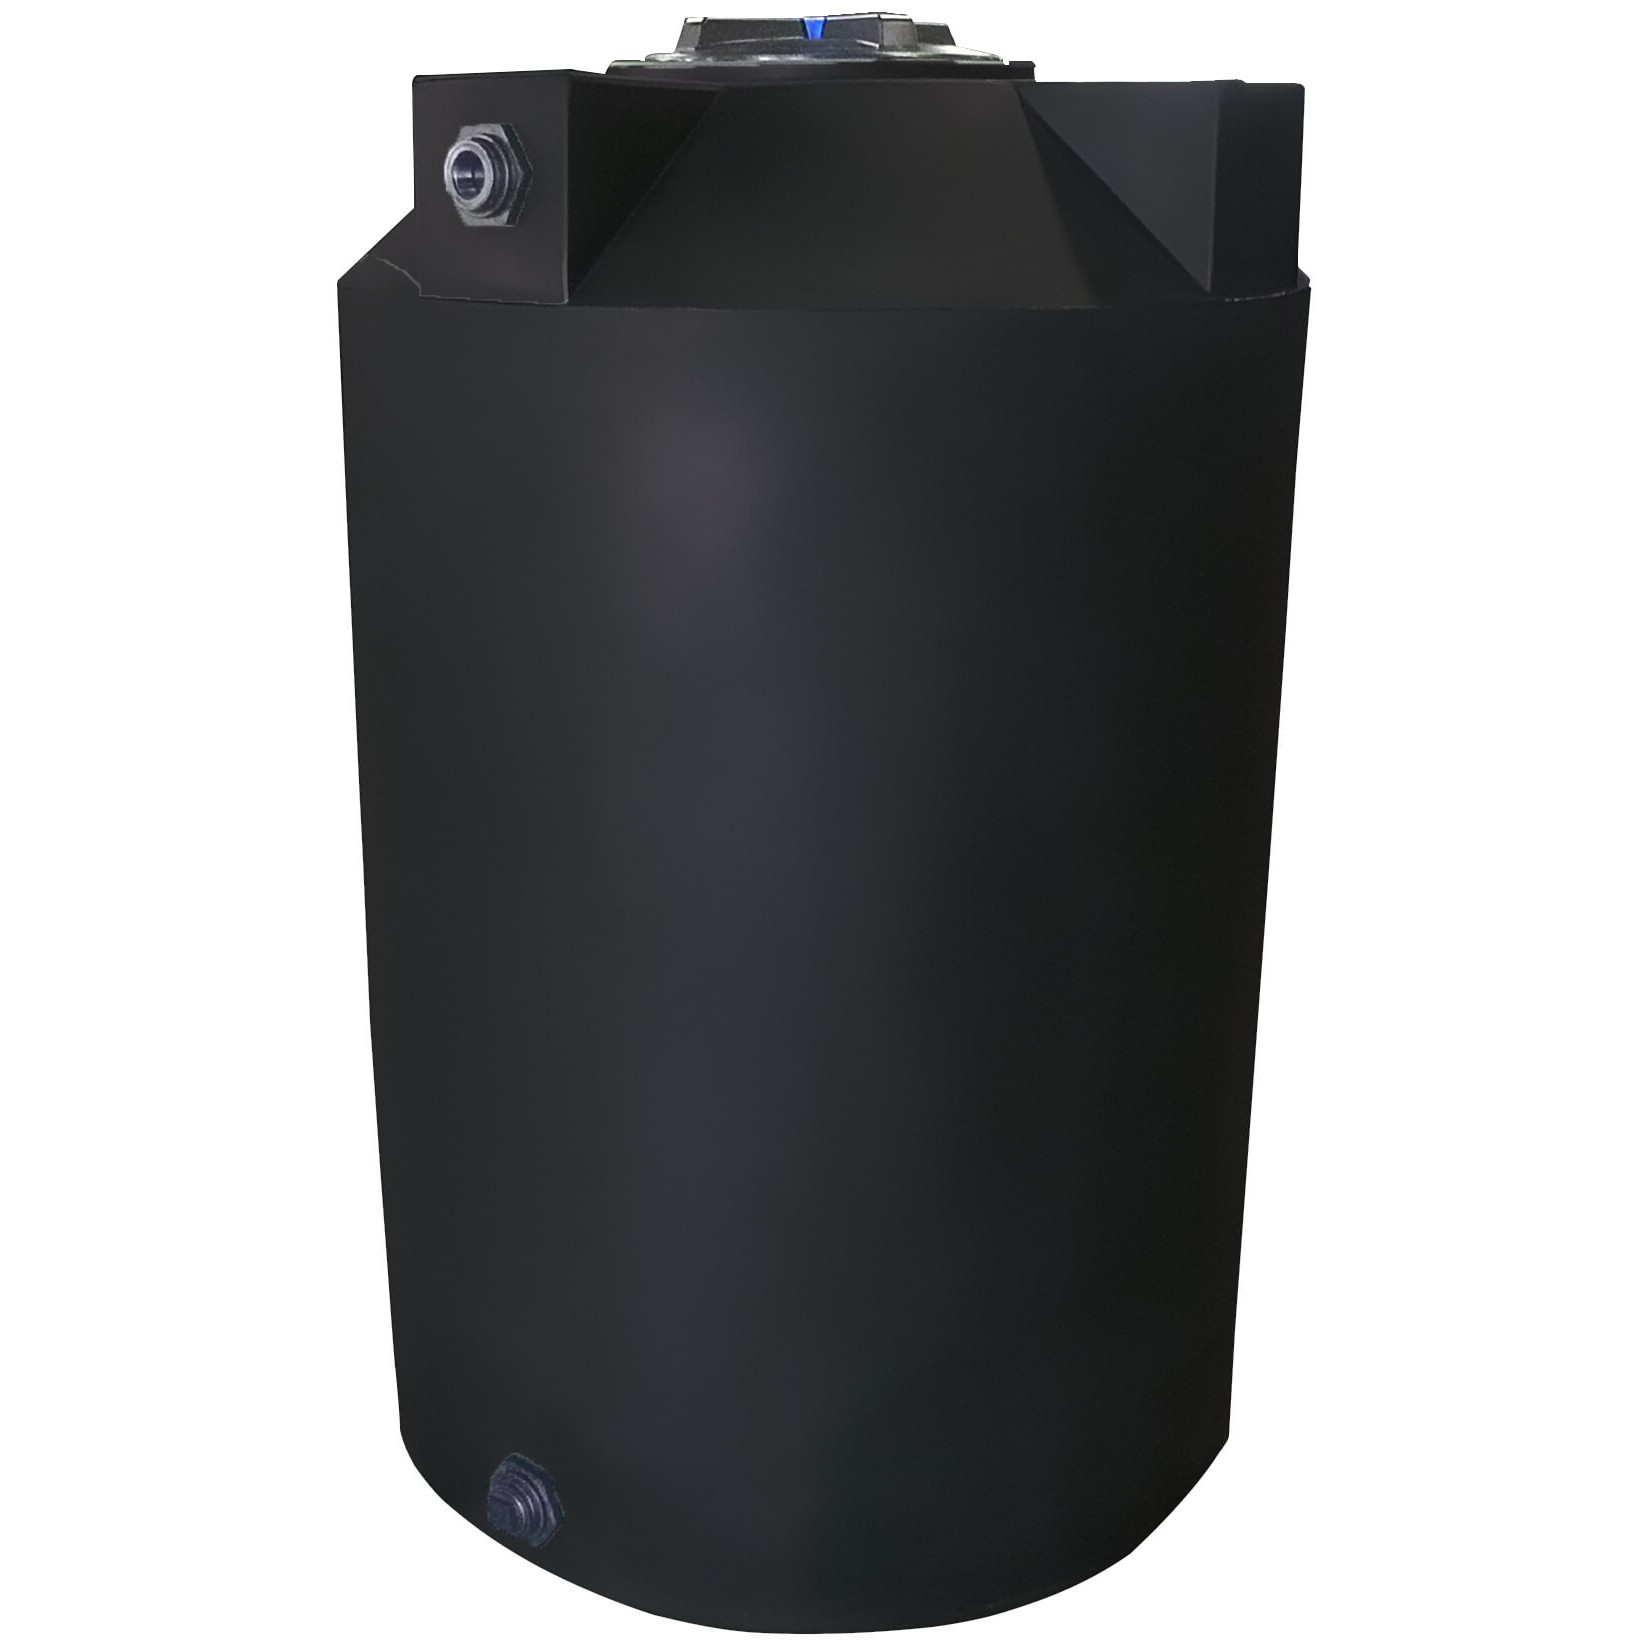 100 Gallon Black Vertical Water Storage Tank ...  sc 1 st  National Tank Outlet & 100 Gallon Water Storage Tank | Poly-Mart PM100B